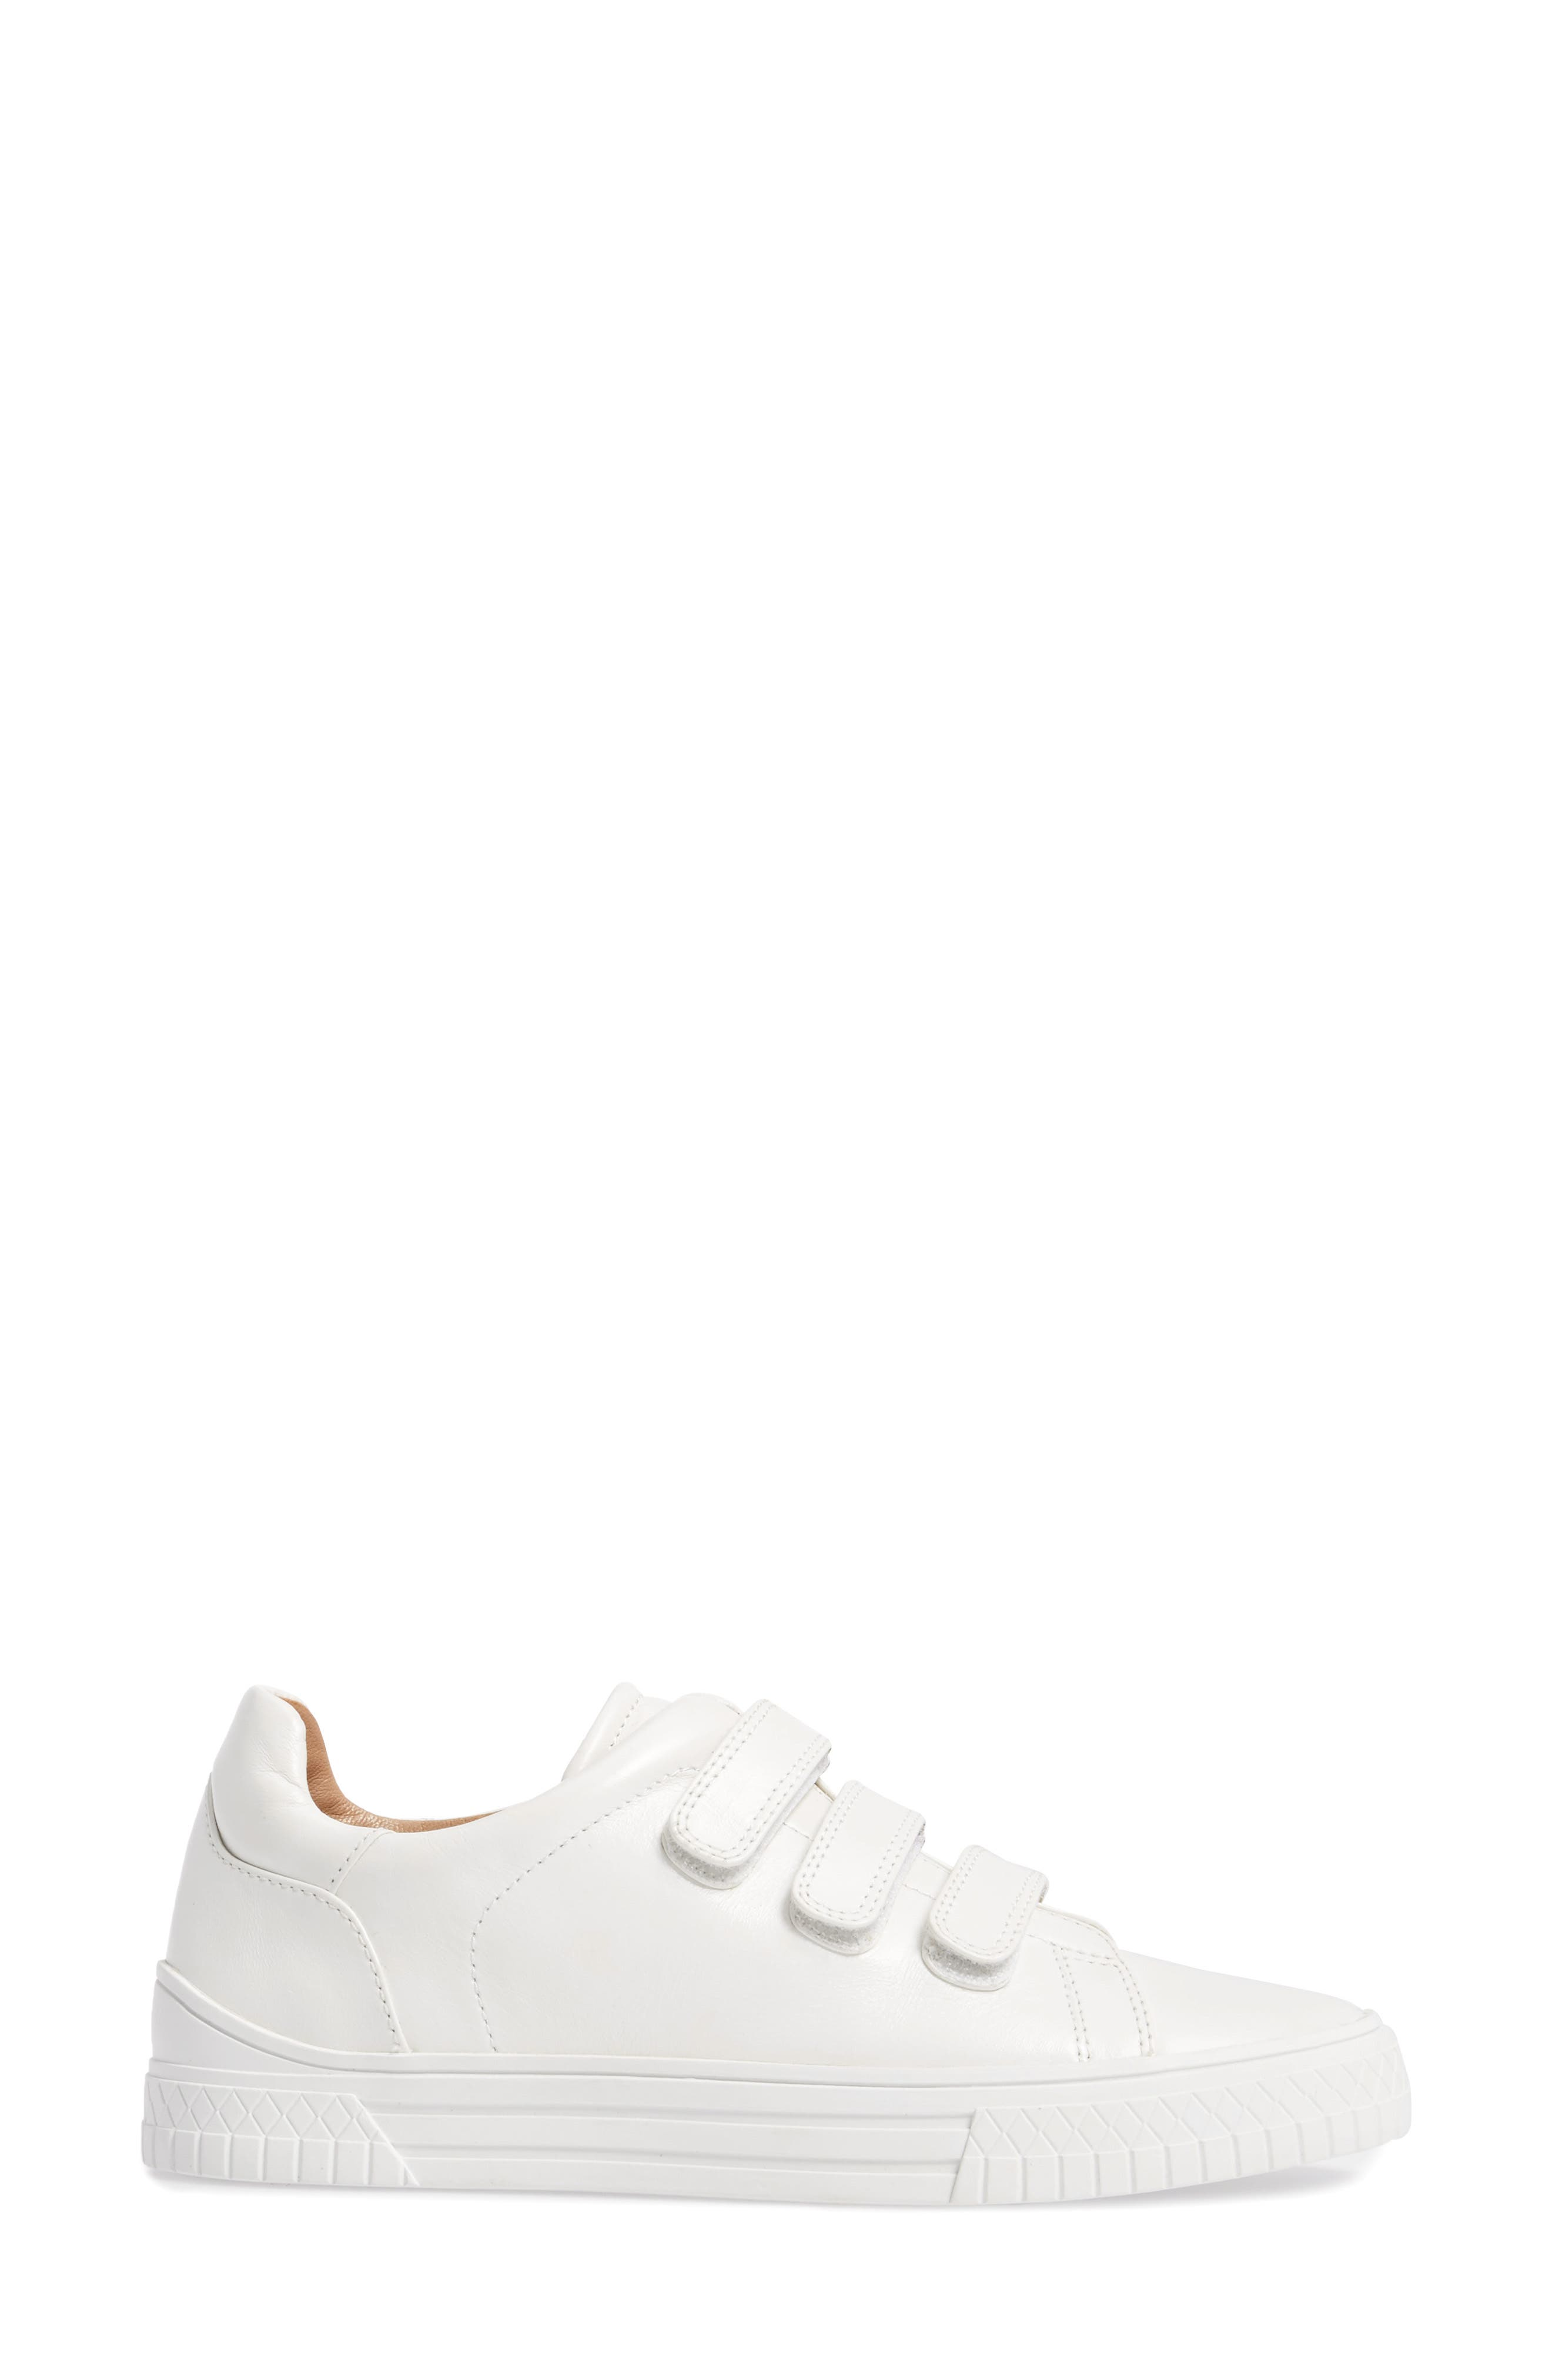 Grace Sneaker,                             Alternate thumbnail 3, color,                             White Leather